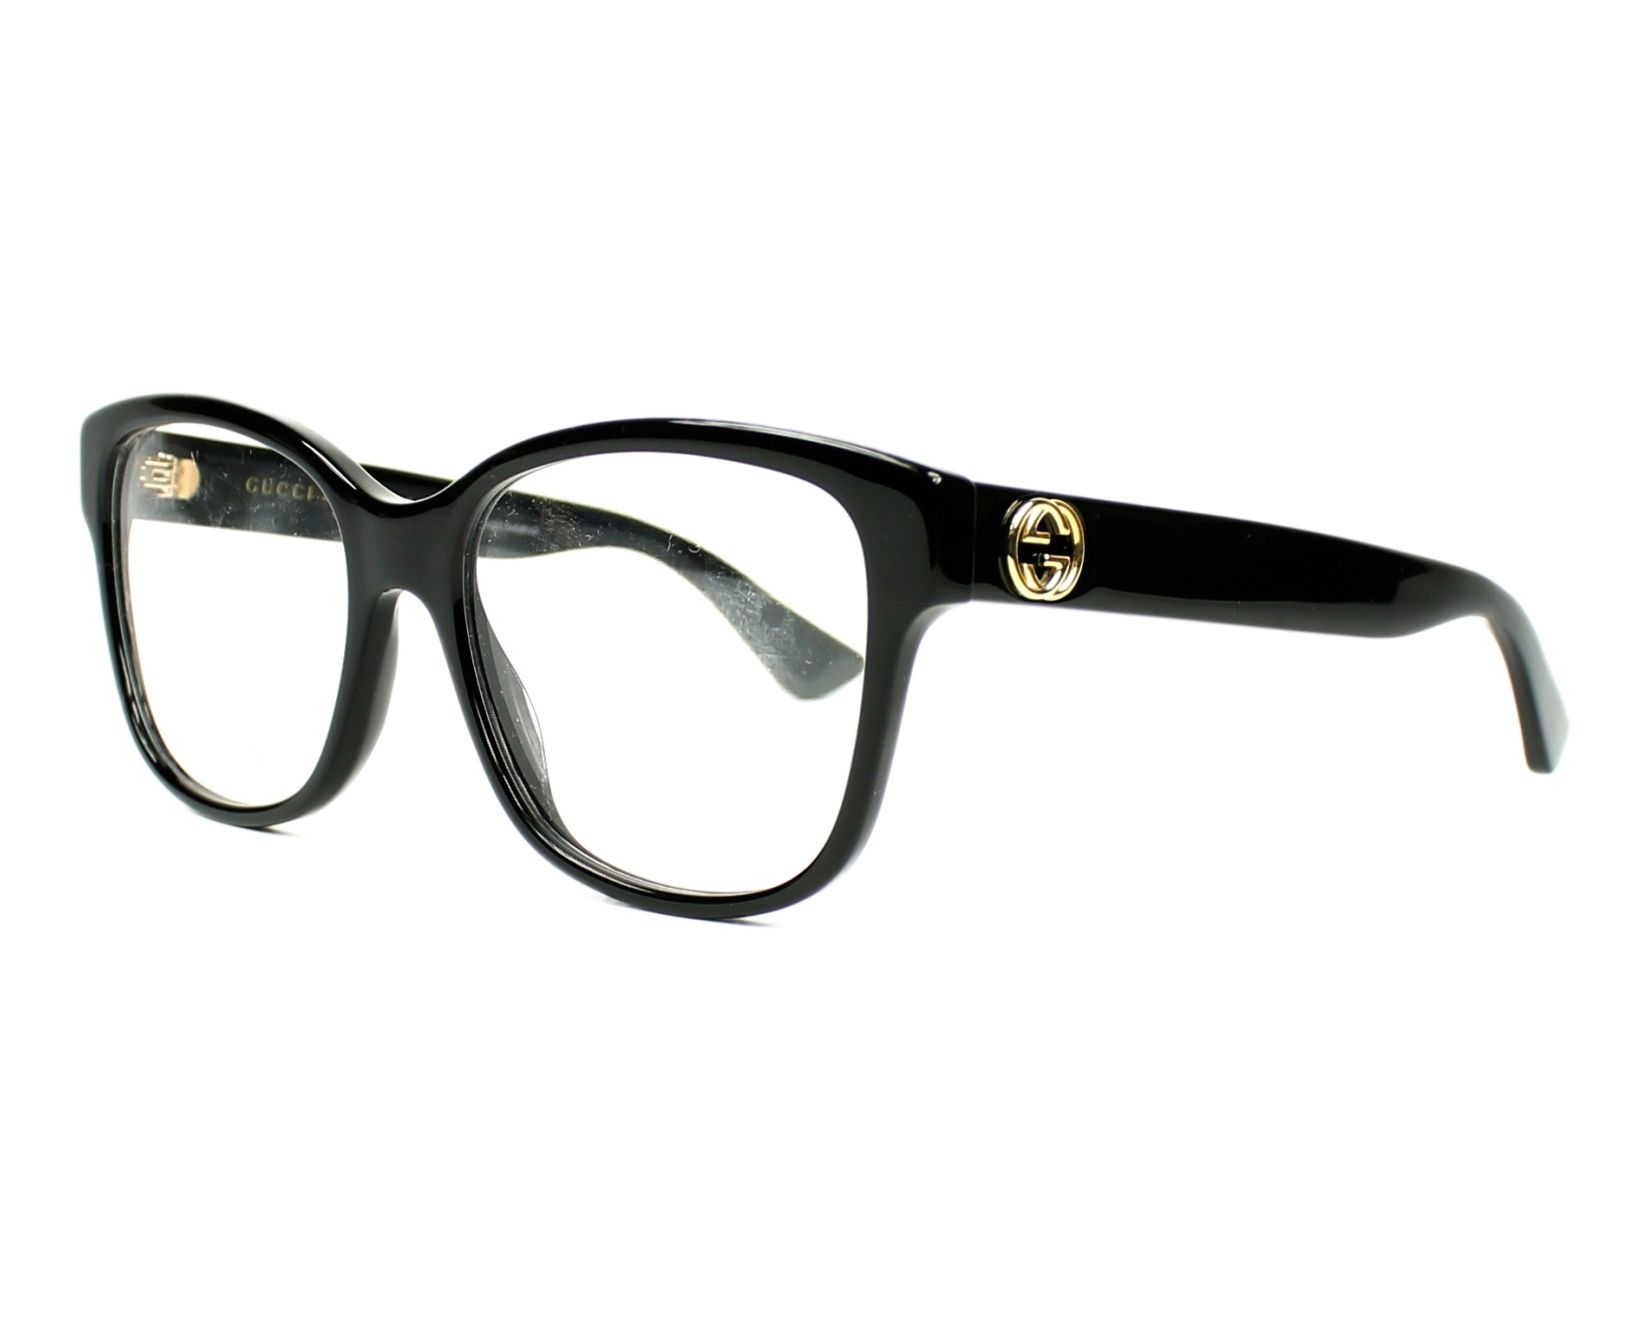 232ef997ea0 Gucci - Buy Gucci eyeglasses online at low prices